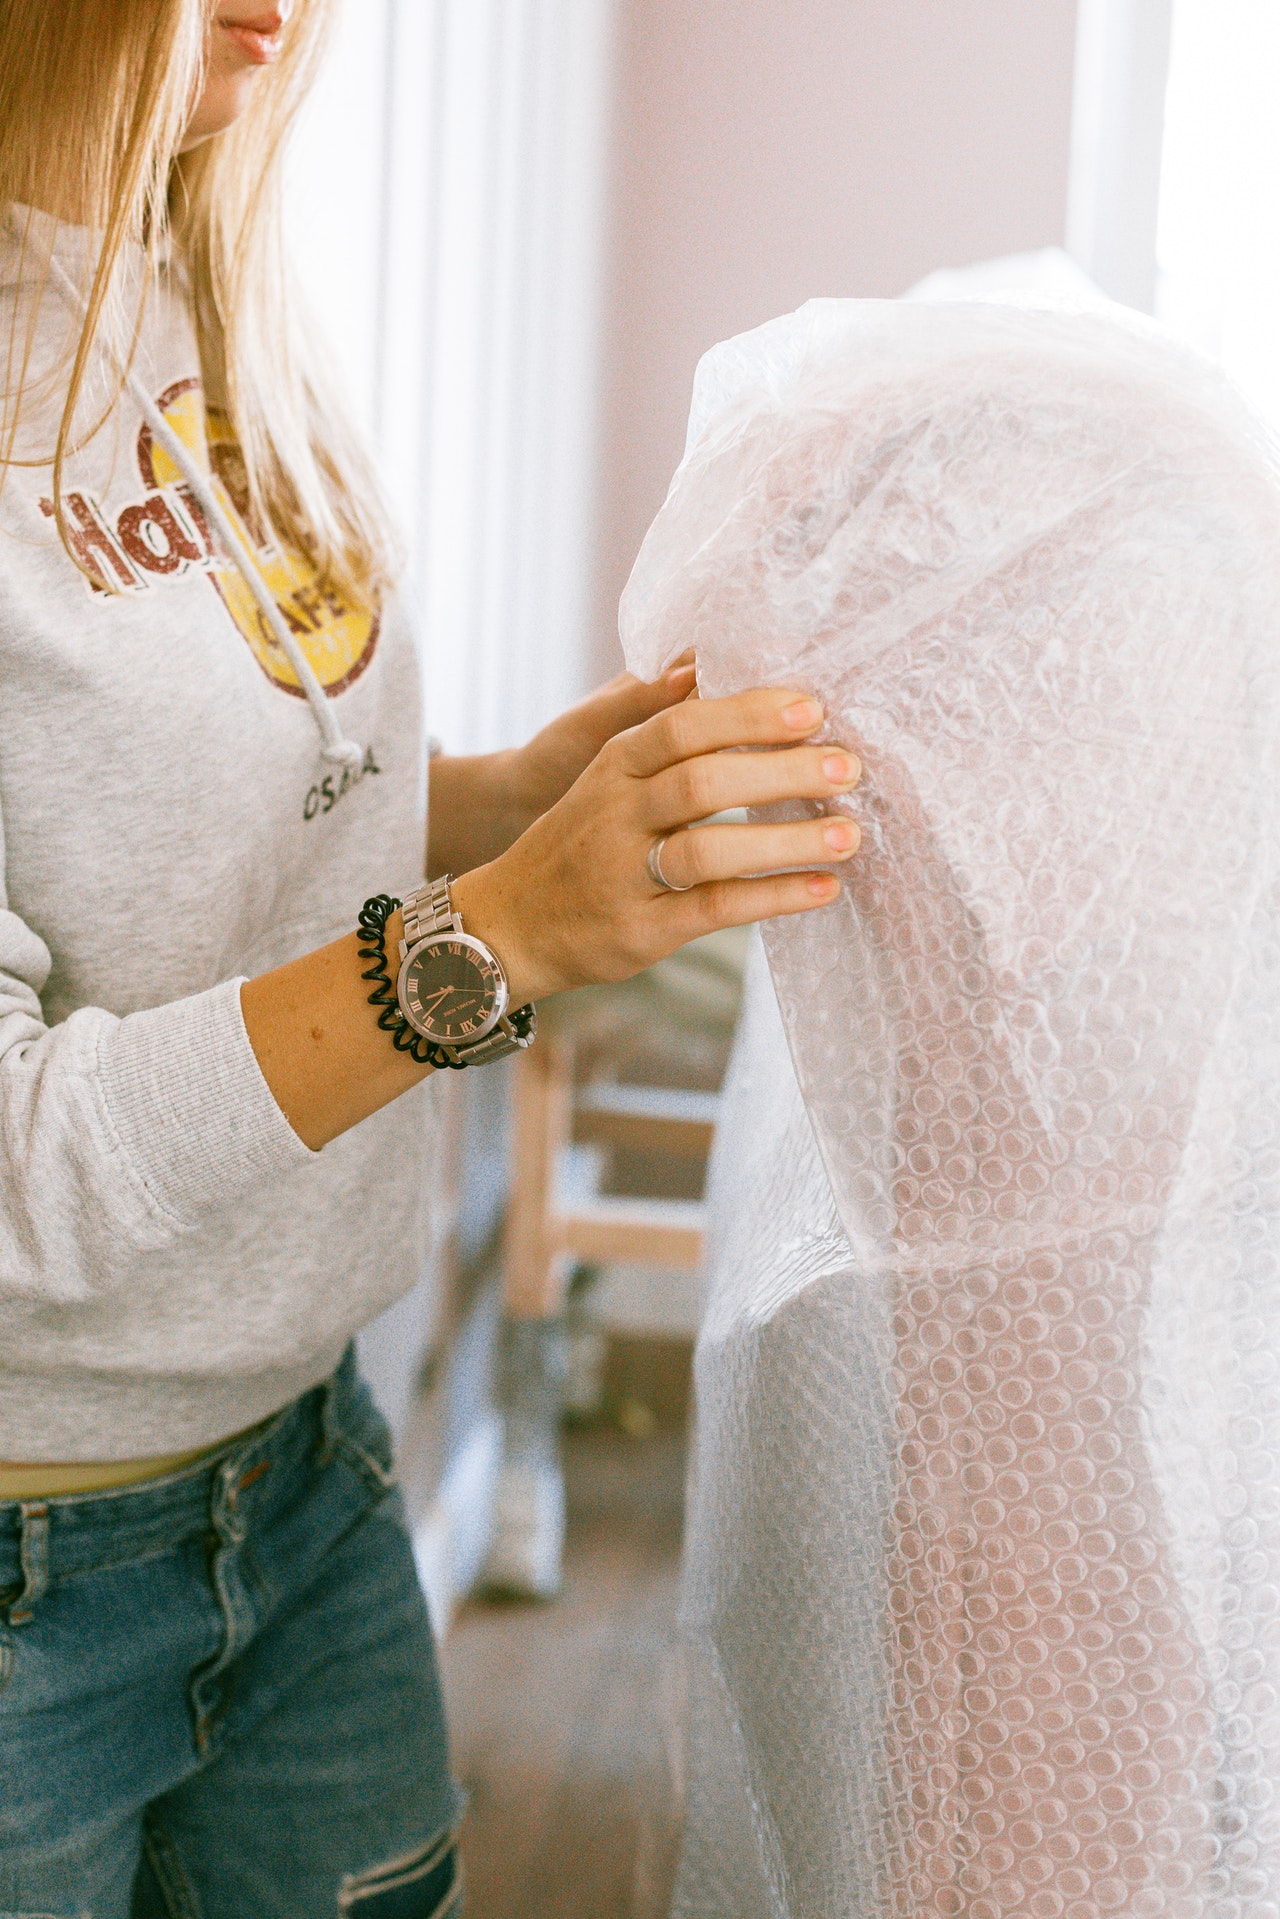 Woman wrapping furniture in bubble wrap